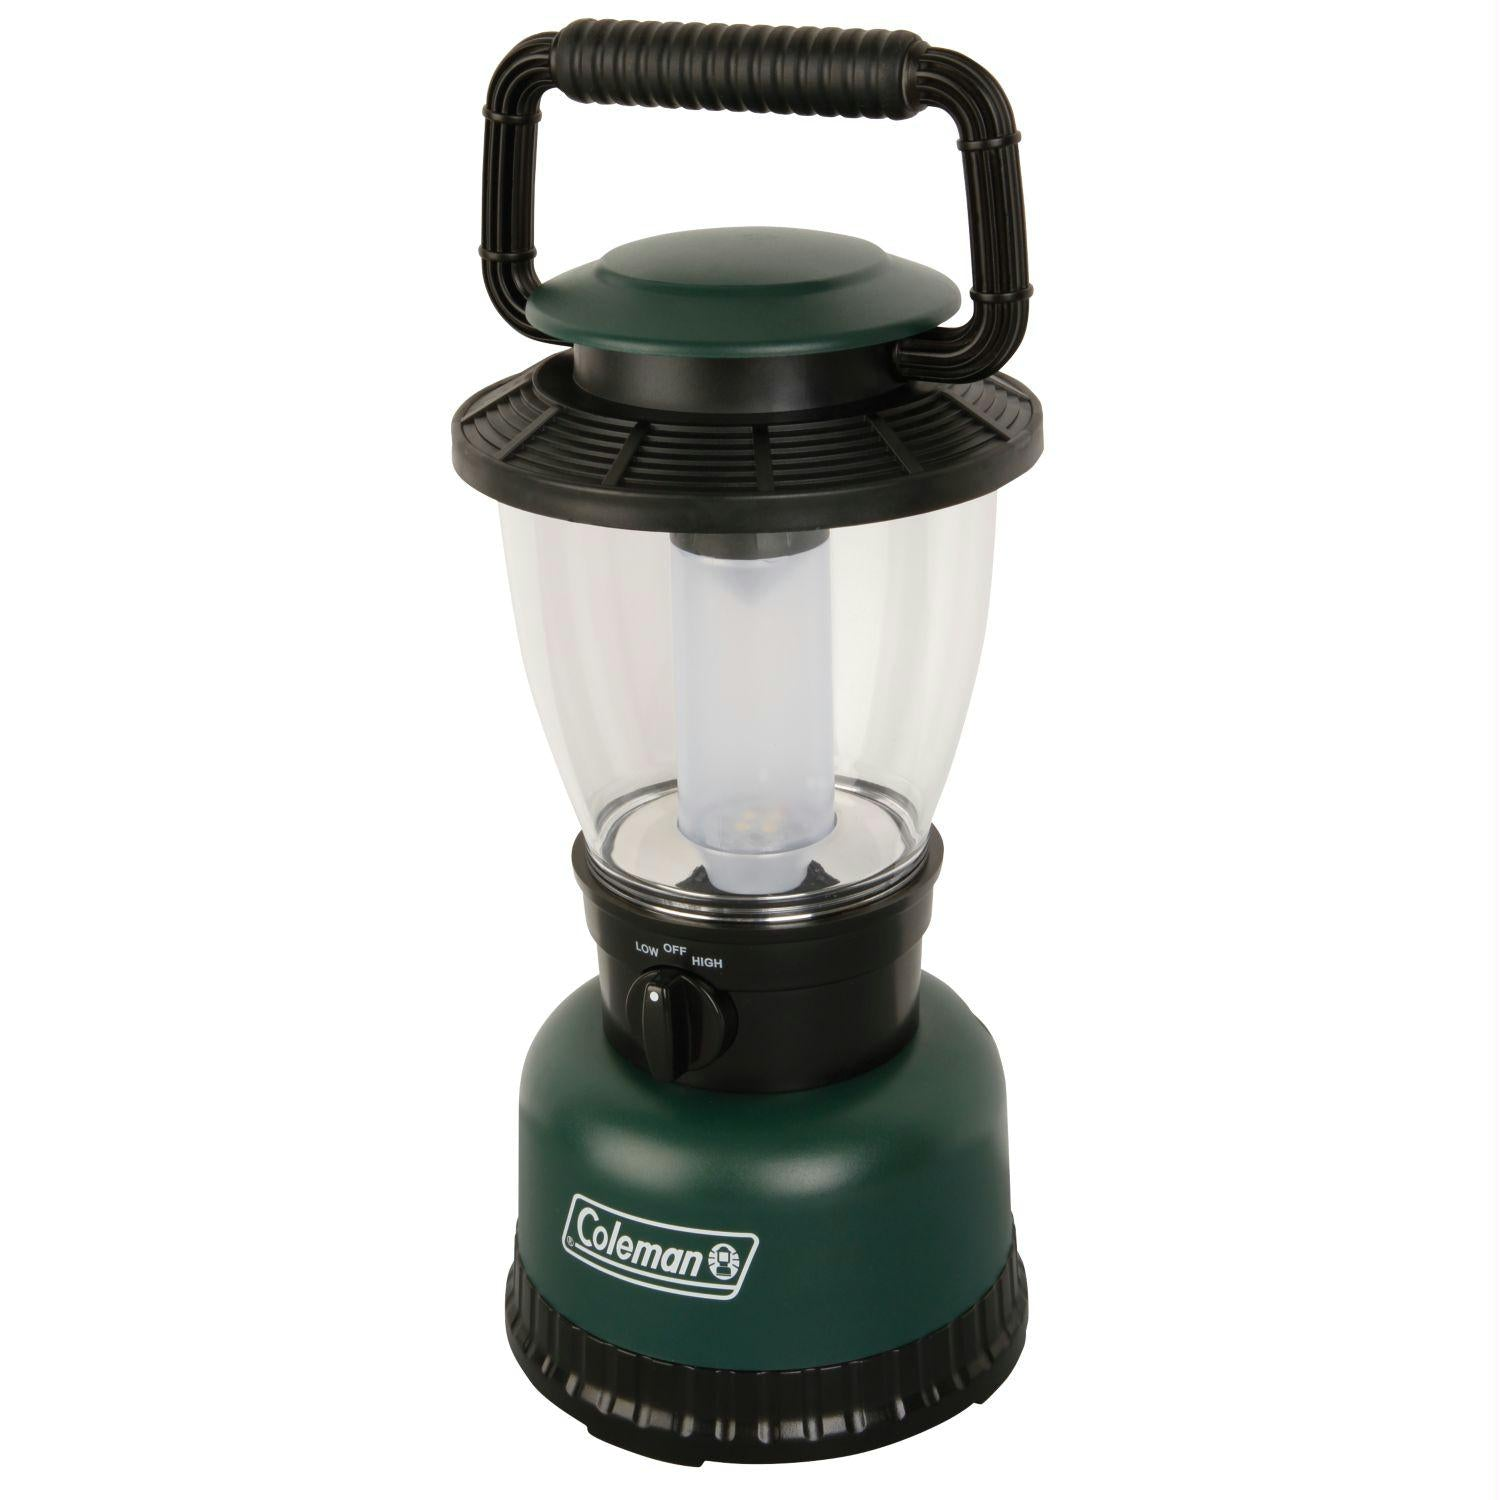 Coleman Rugged CPX 6 Personal Size LED Lantern Green - Survival Camping Pro